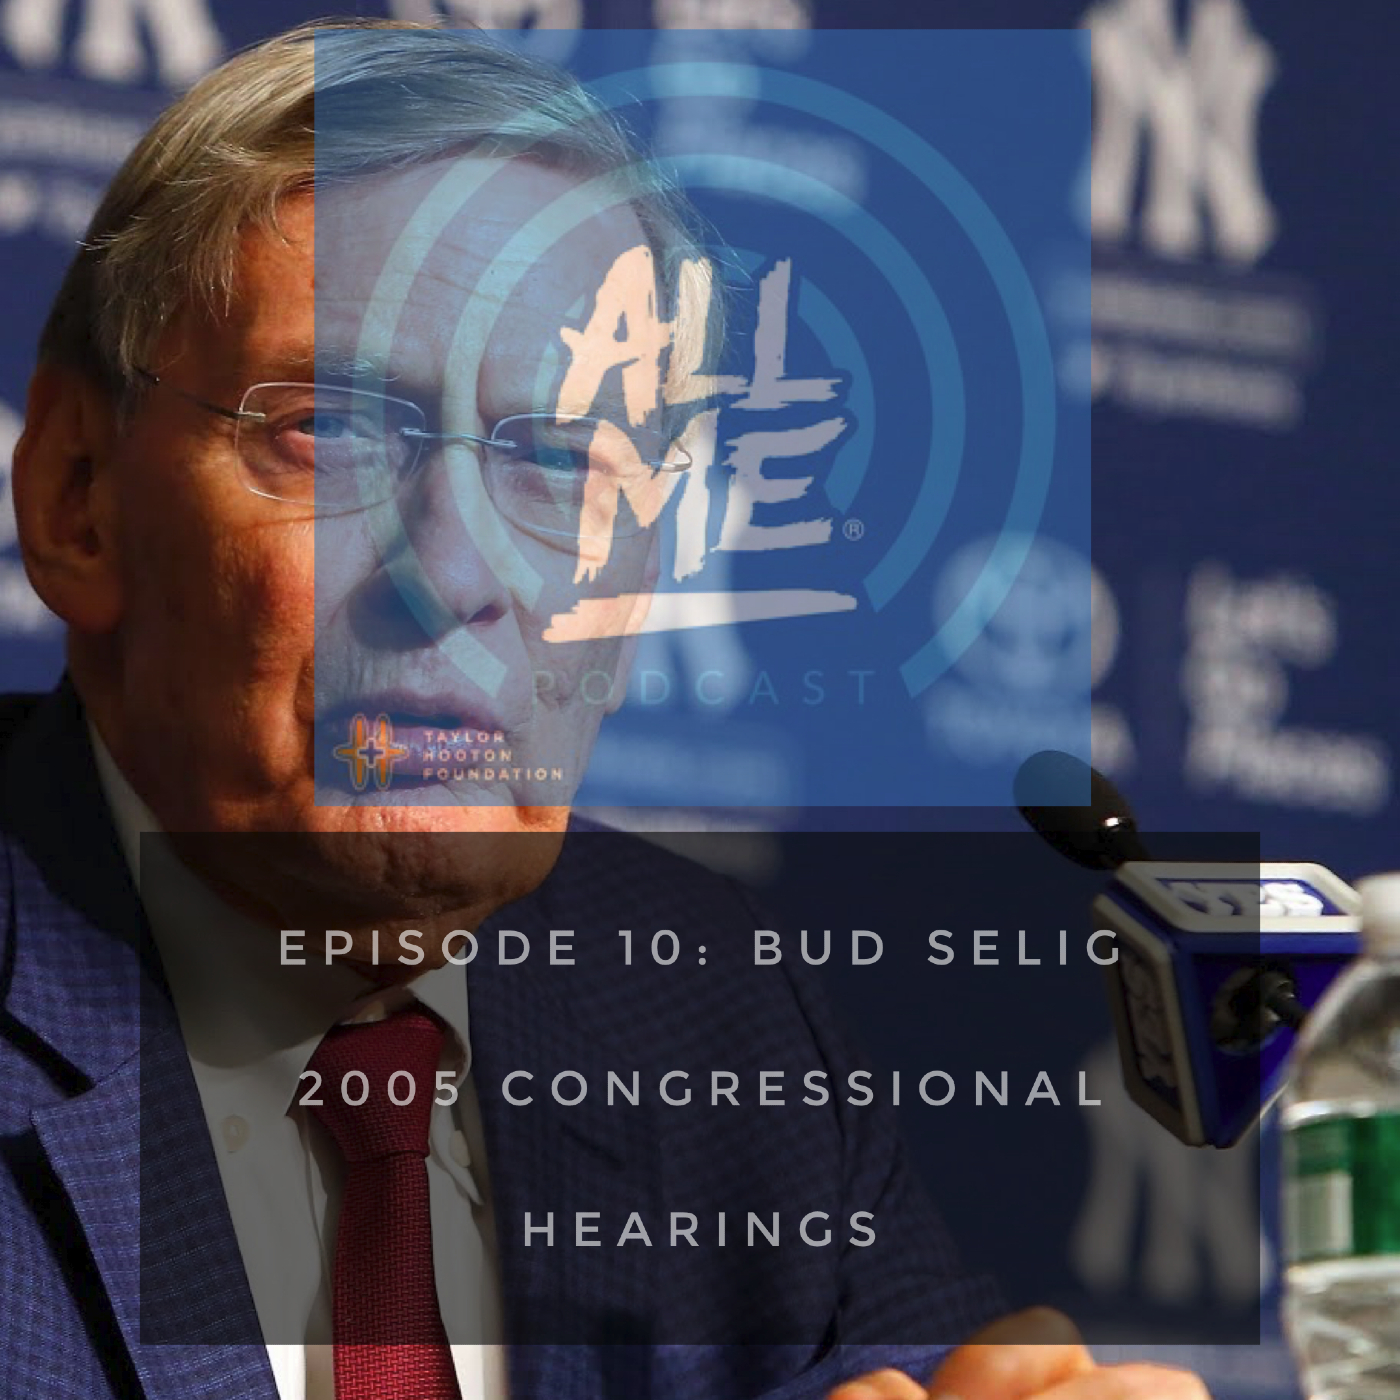 Episode 10: 2005 MLB Congressional Hearings - Bud Selig